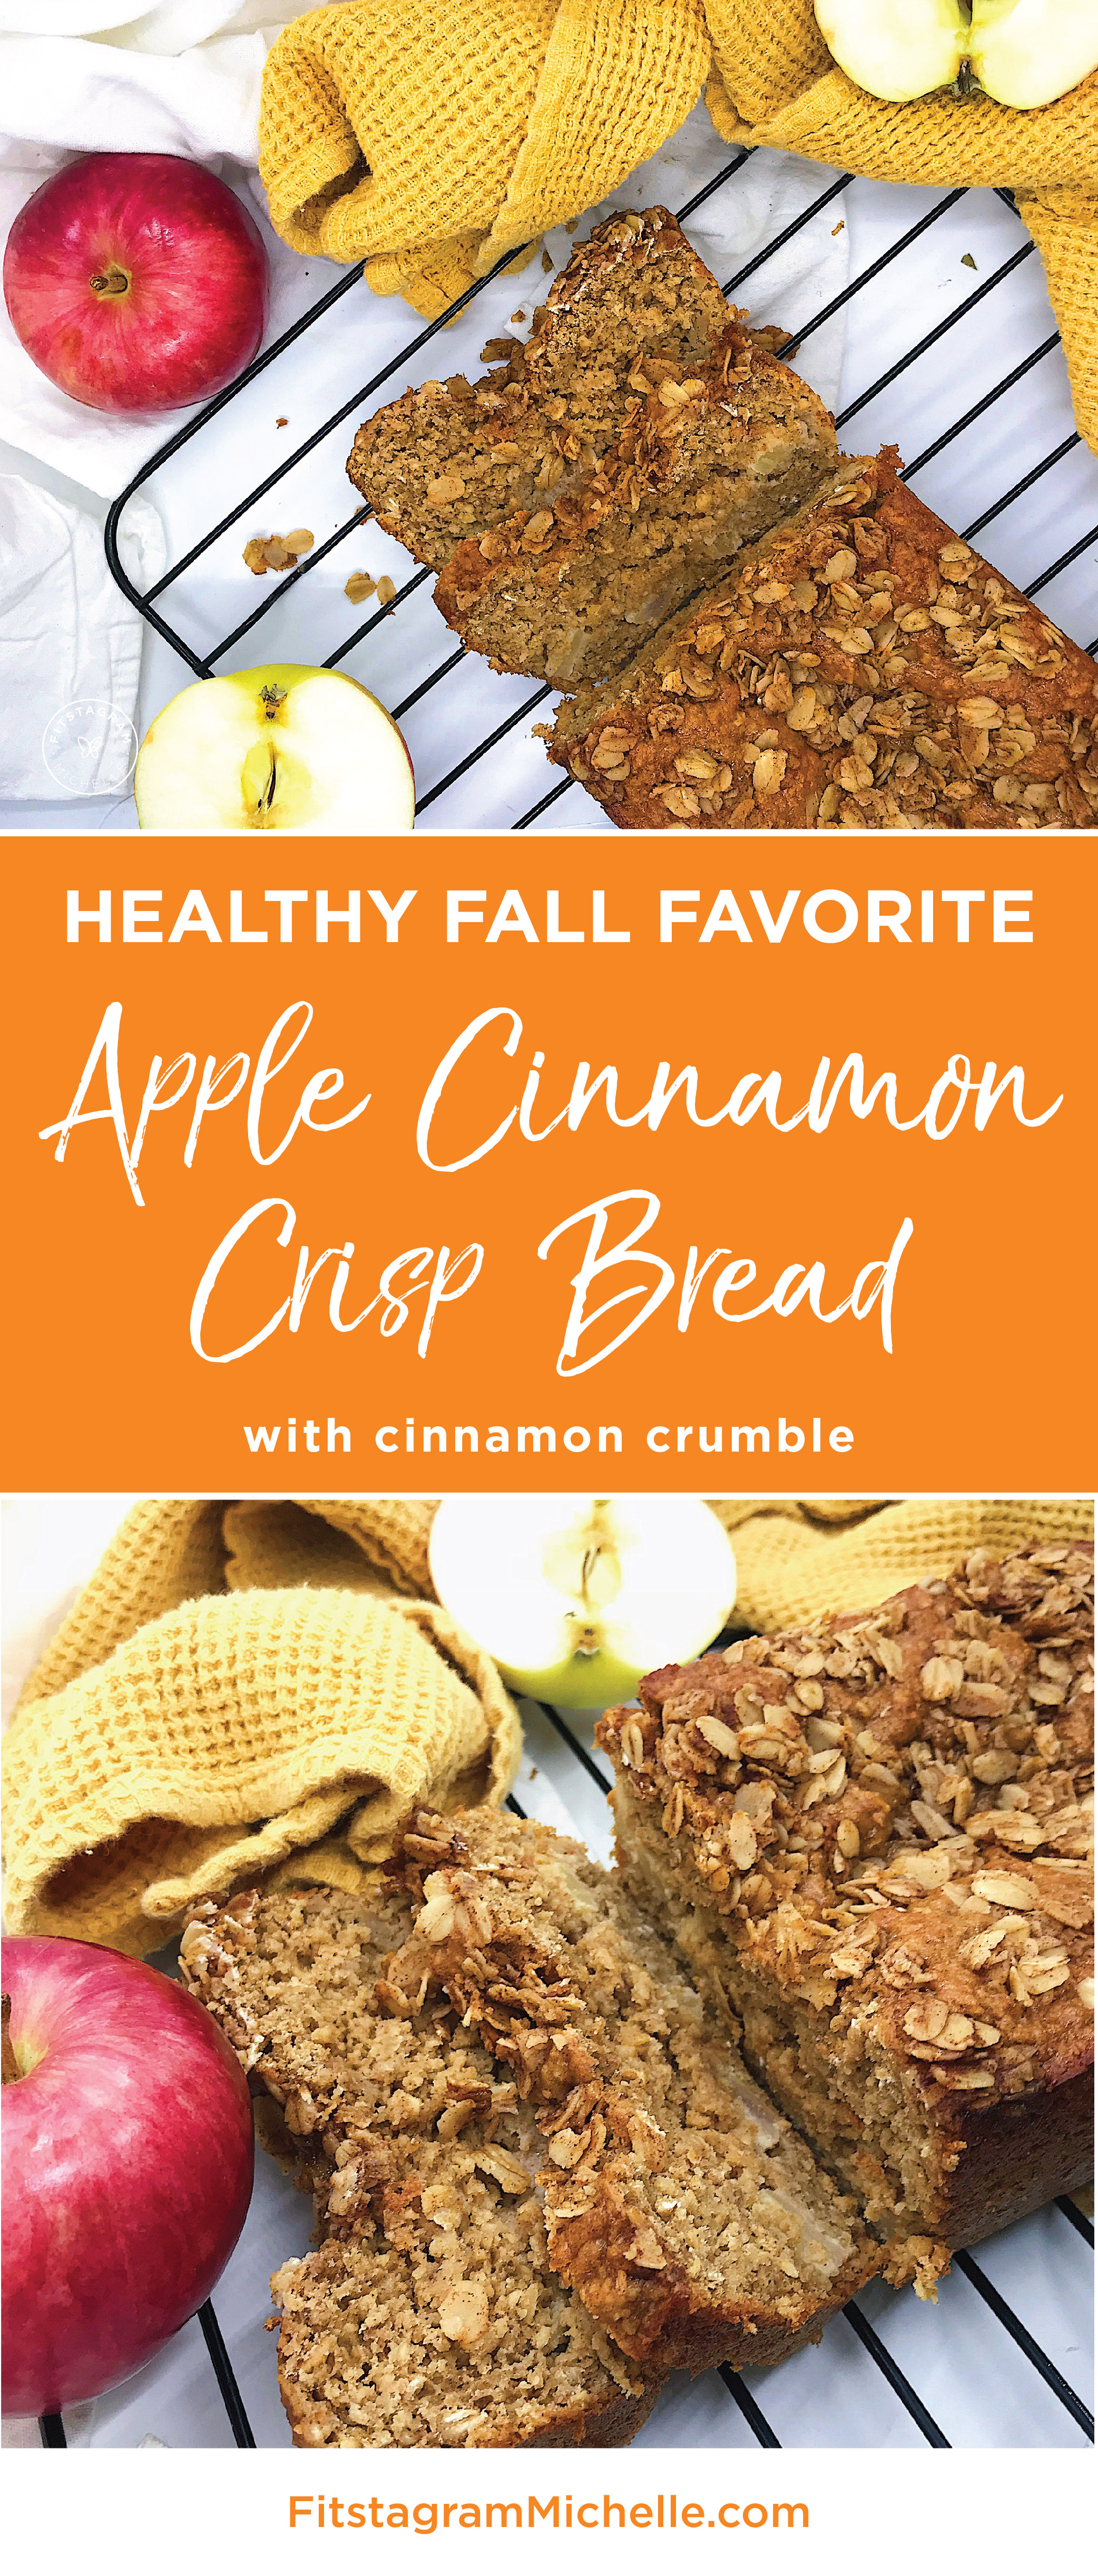 Healthy Apple Cinnamon Crisp Bread! Sweet and moist but all healthy ingredients. Simple to make and tastes like cake! Find the recipe at Fitstagrammichelle.com